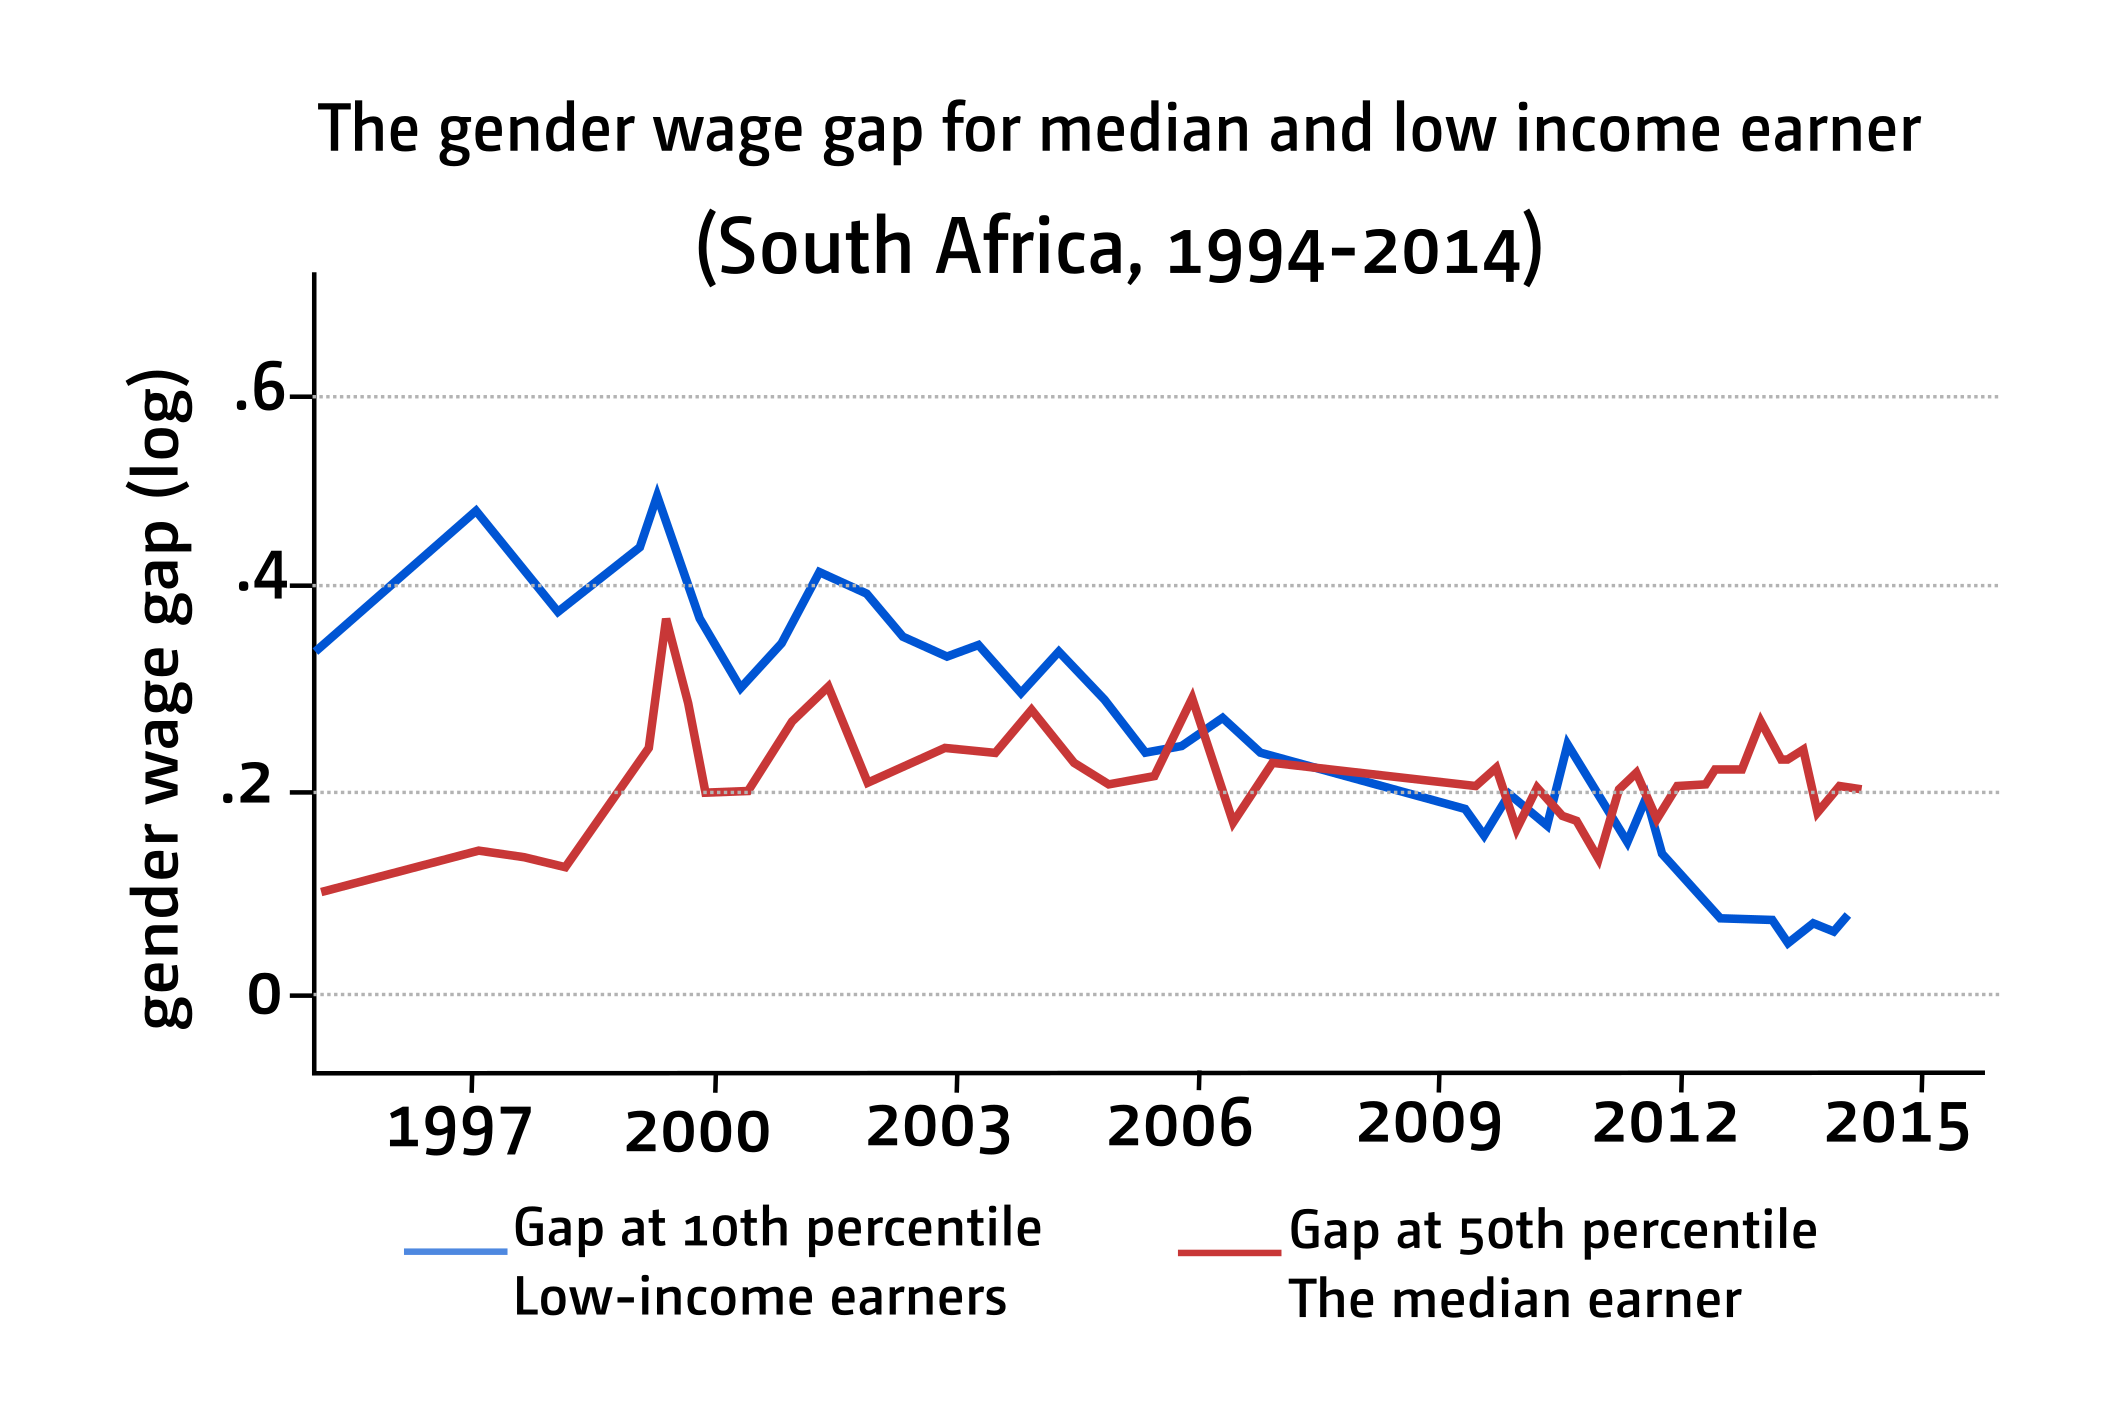 Figure 2: Gender wage gap for median and low-income earner